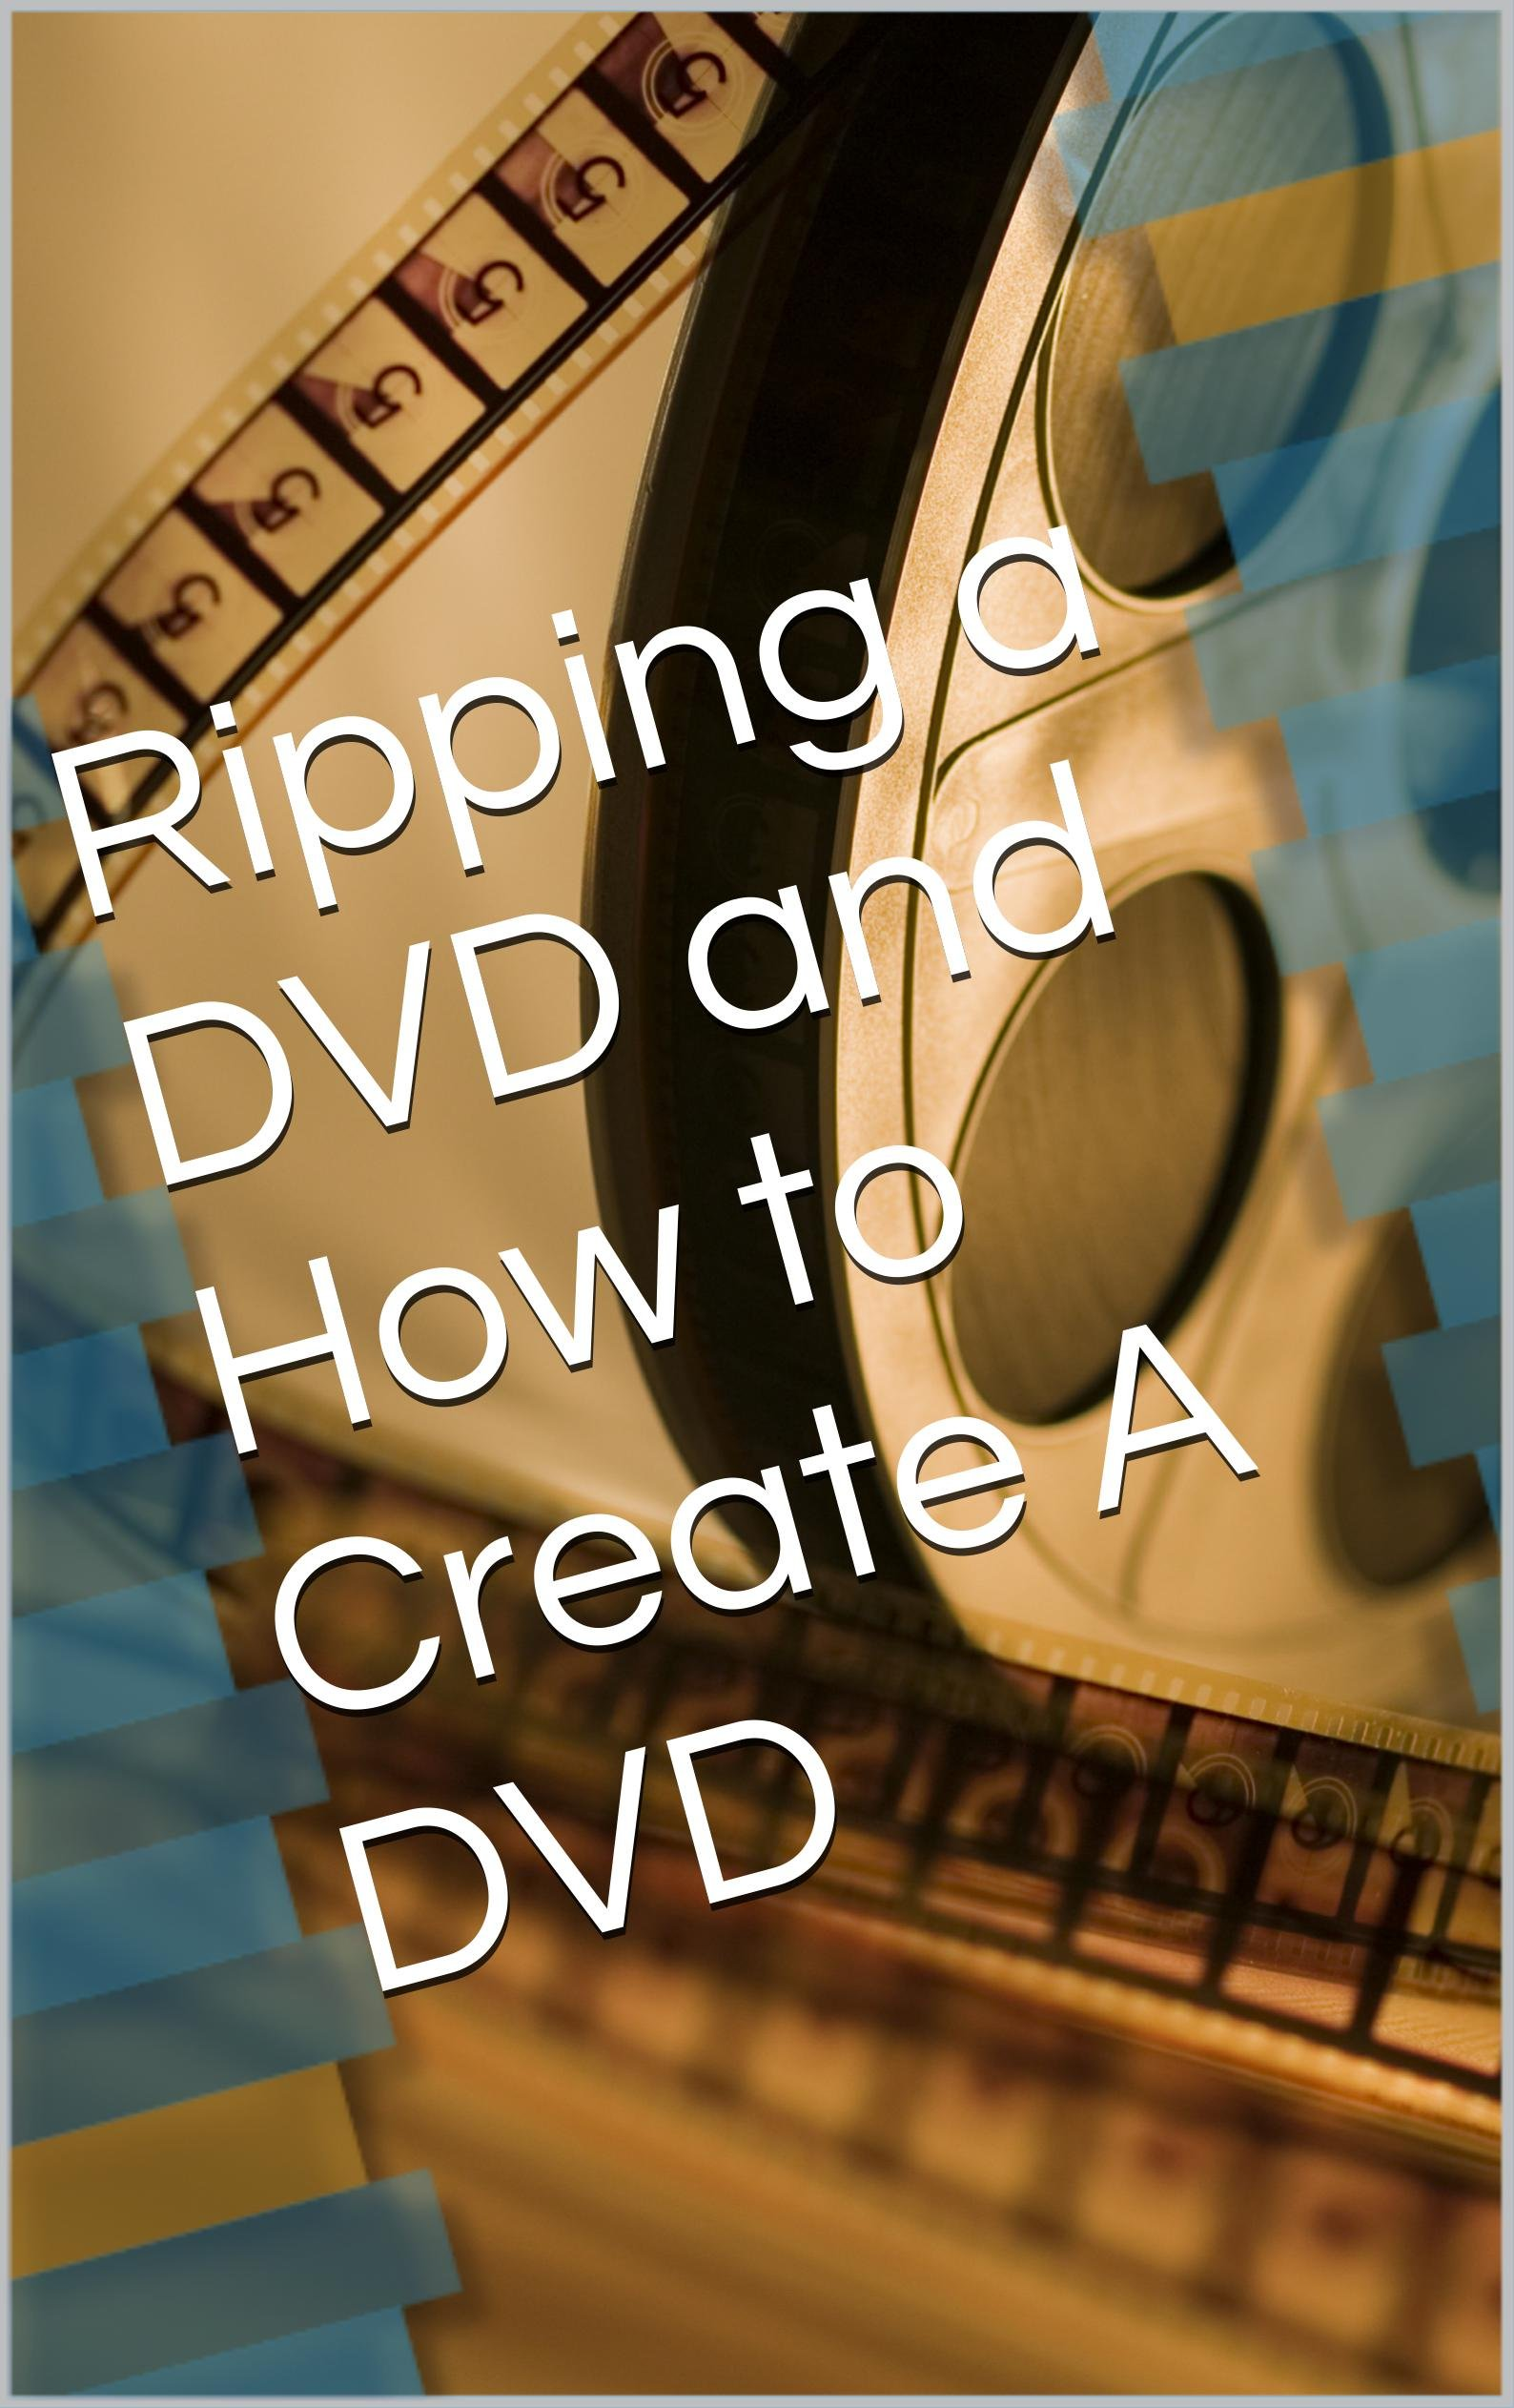 Ripping A DVD And How To Create A DVD  English Edition